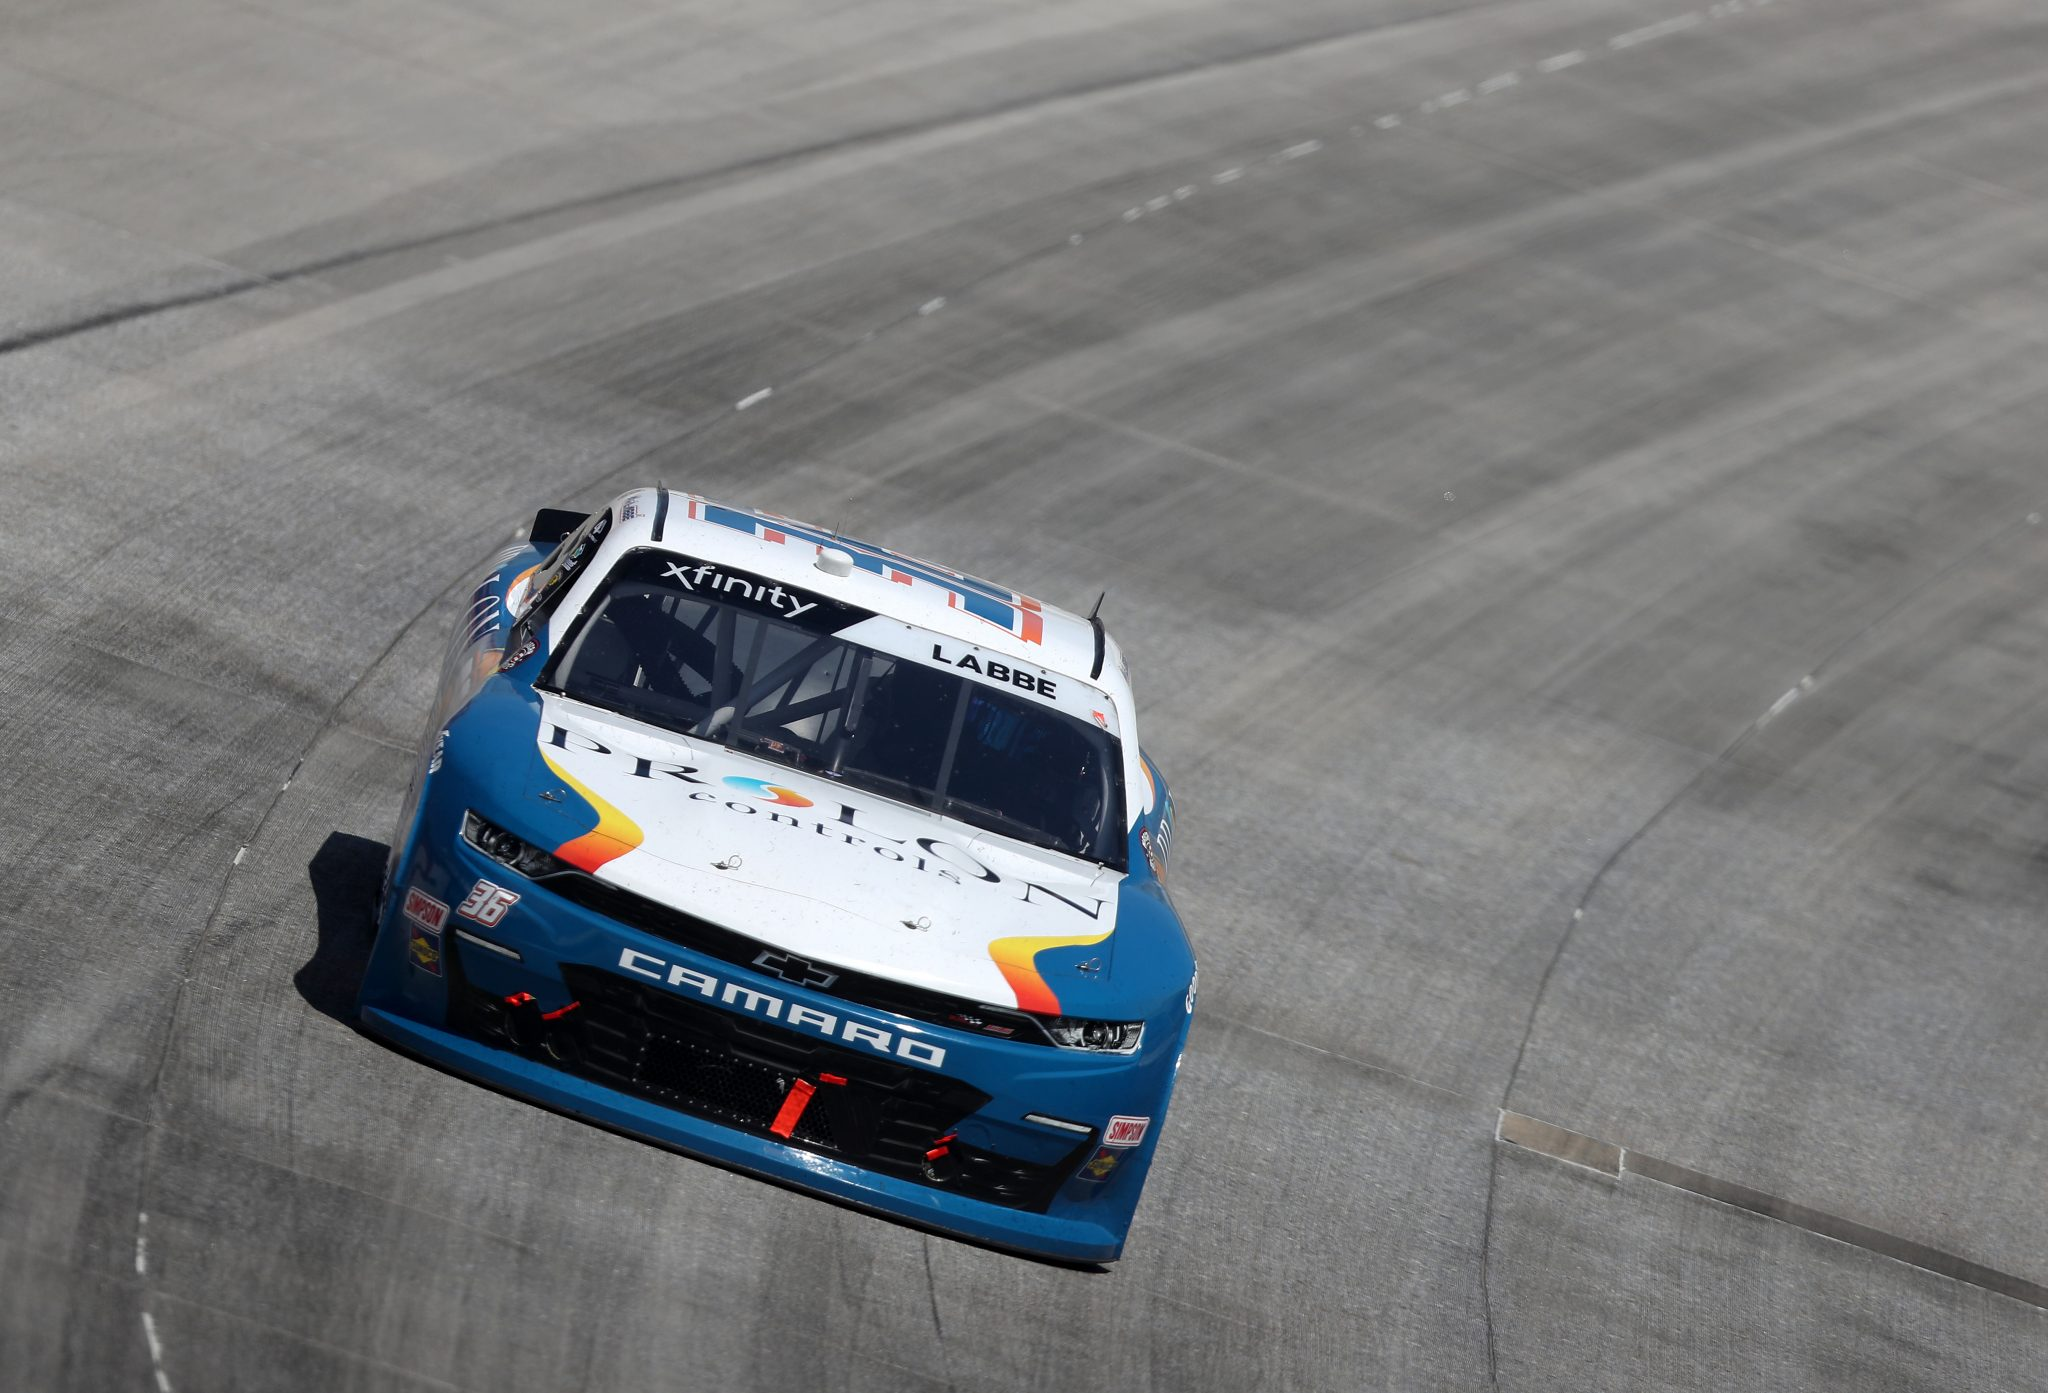 DOVER, DELAWARE - MAY 15: Alex Labbe, driver of the #36 Prolon/rousseau/Silver Wax Chevrolet, races during the NASCAR Xfinity Series Drydene 200 race at Dover International Speedway on May 15, 2021 in Dover, Delaware. (Photo by James Gilbert/Getty Images) | Getty Images